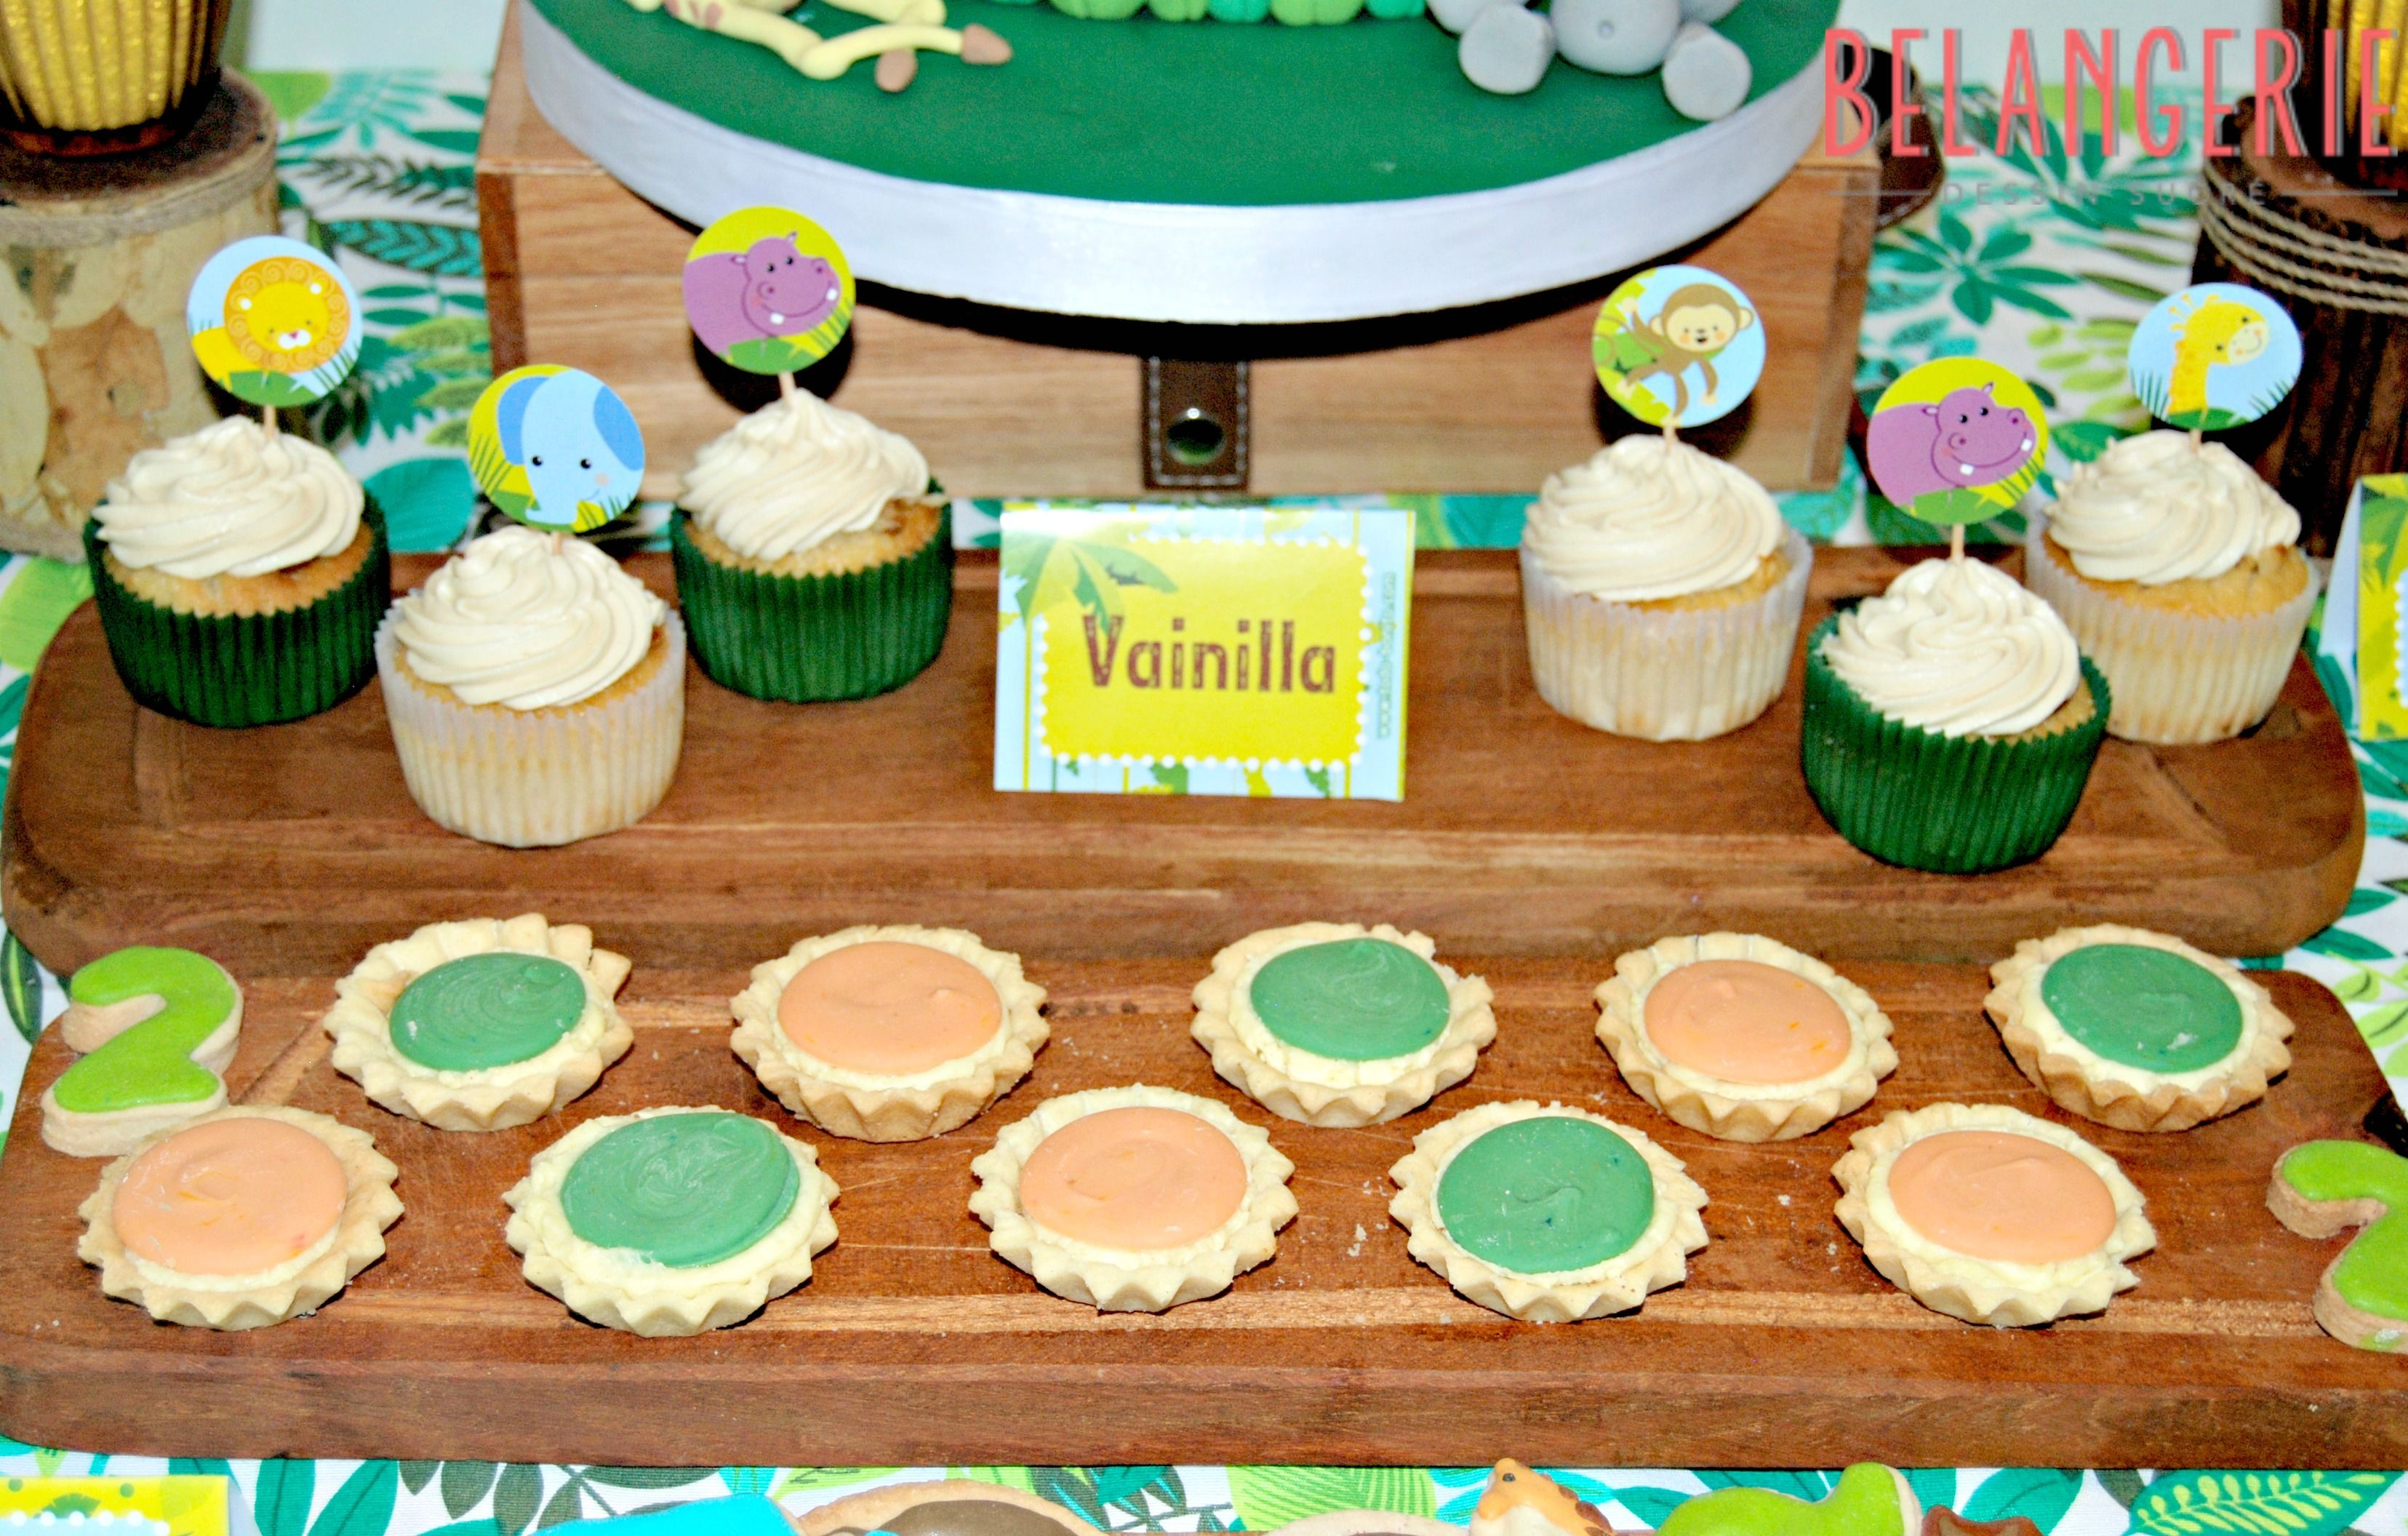 Cupcakes and Mini Tarts